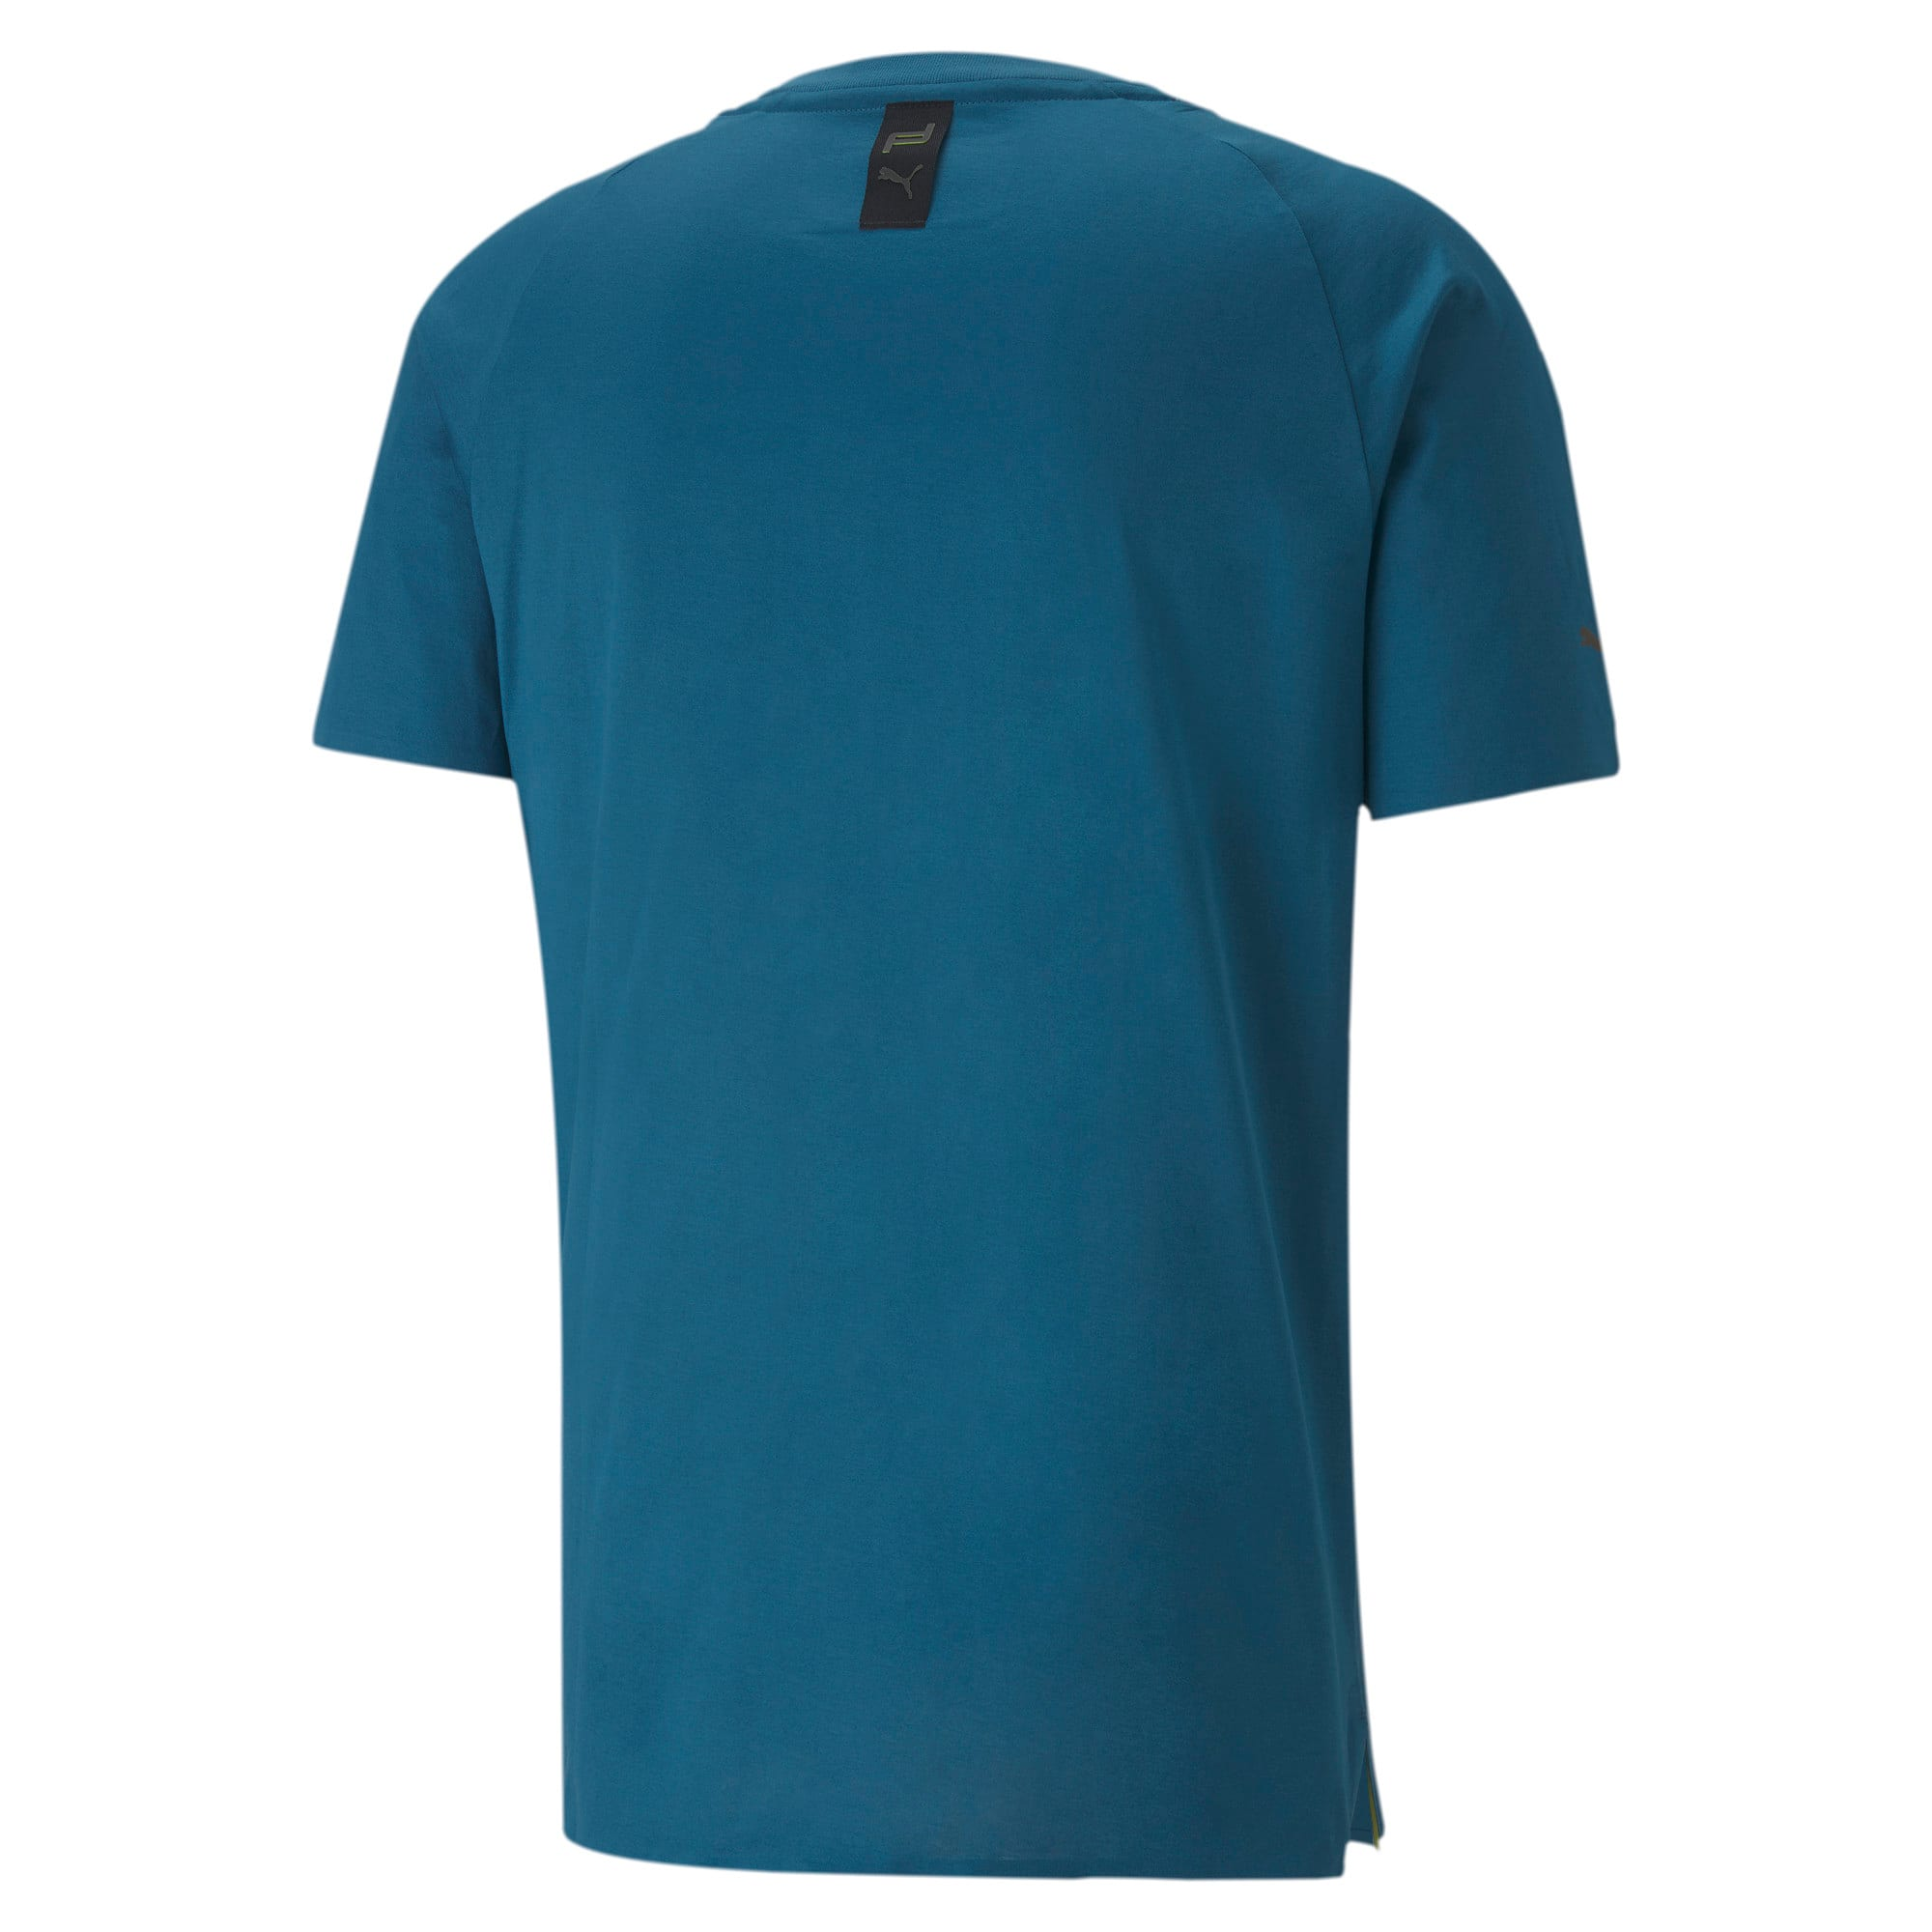 Thumbnail 5 of Porsche Design Men's Essential Tee, Moroccan Blue, medium